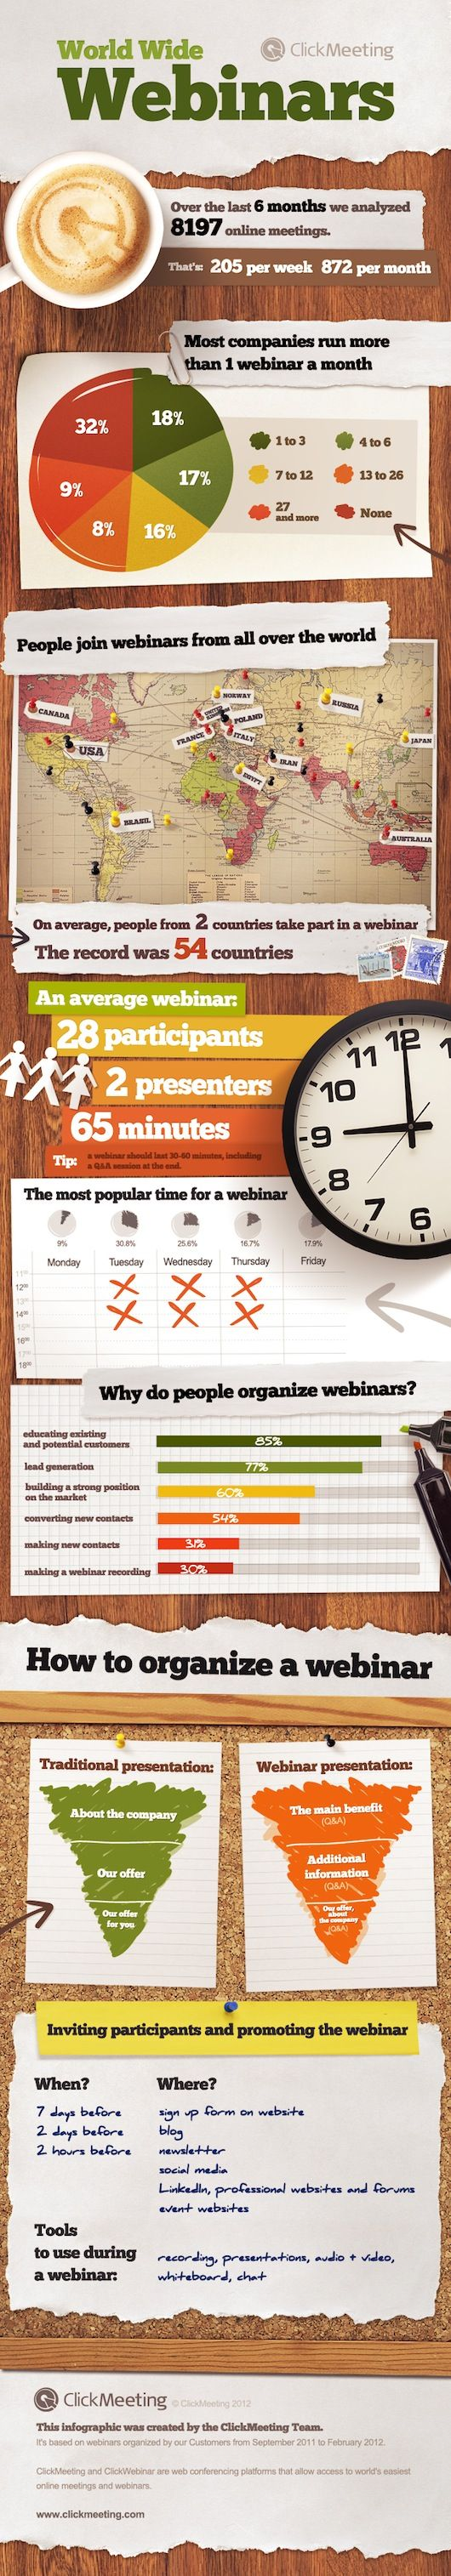 #Webinars – Build Your Business and Authority